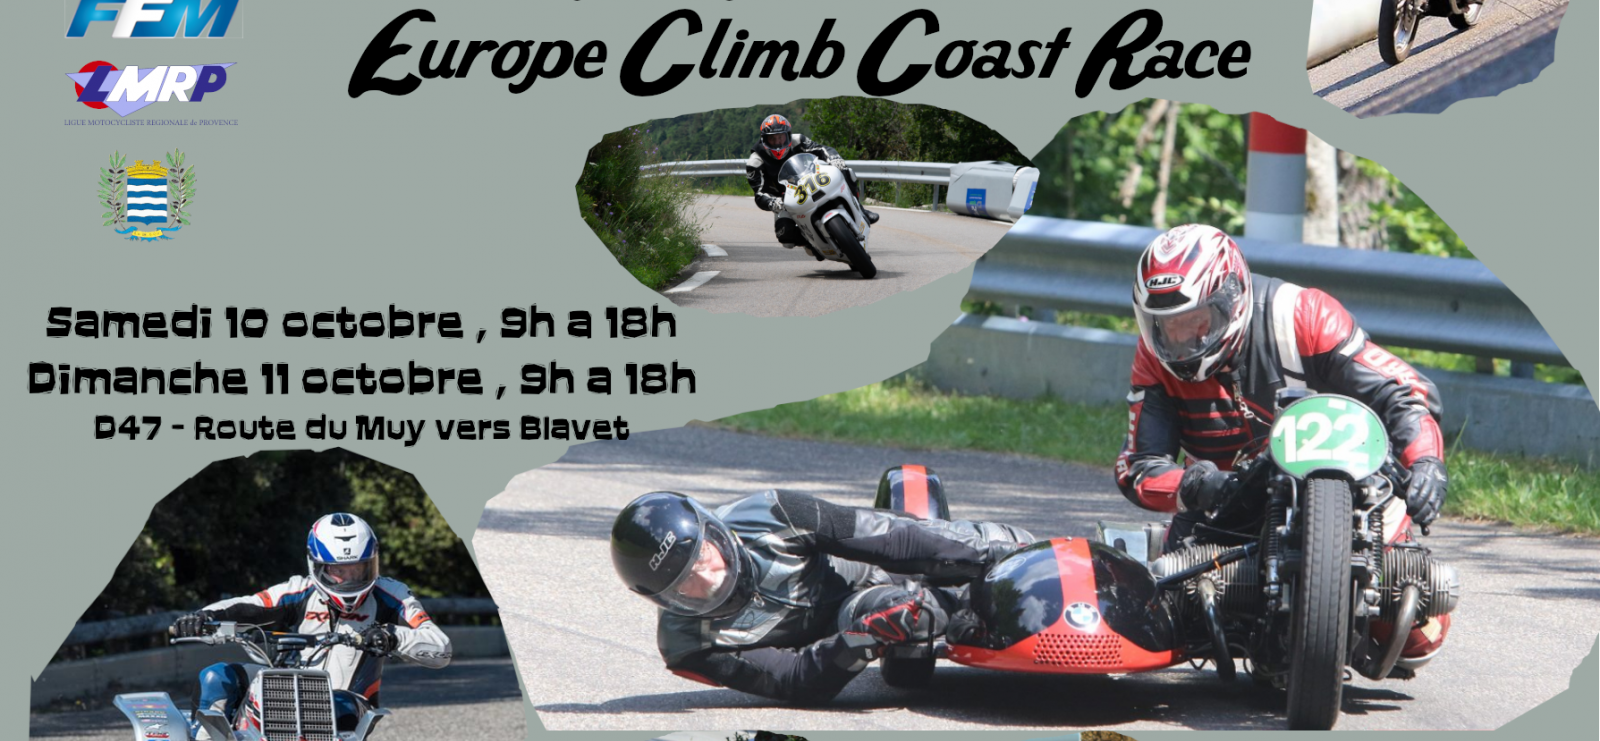 Le Blavet Europe Climb Coast Race